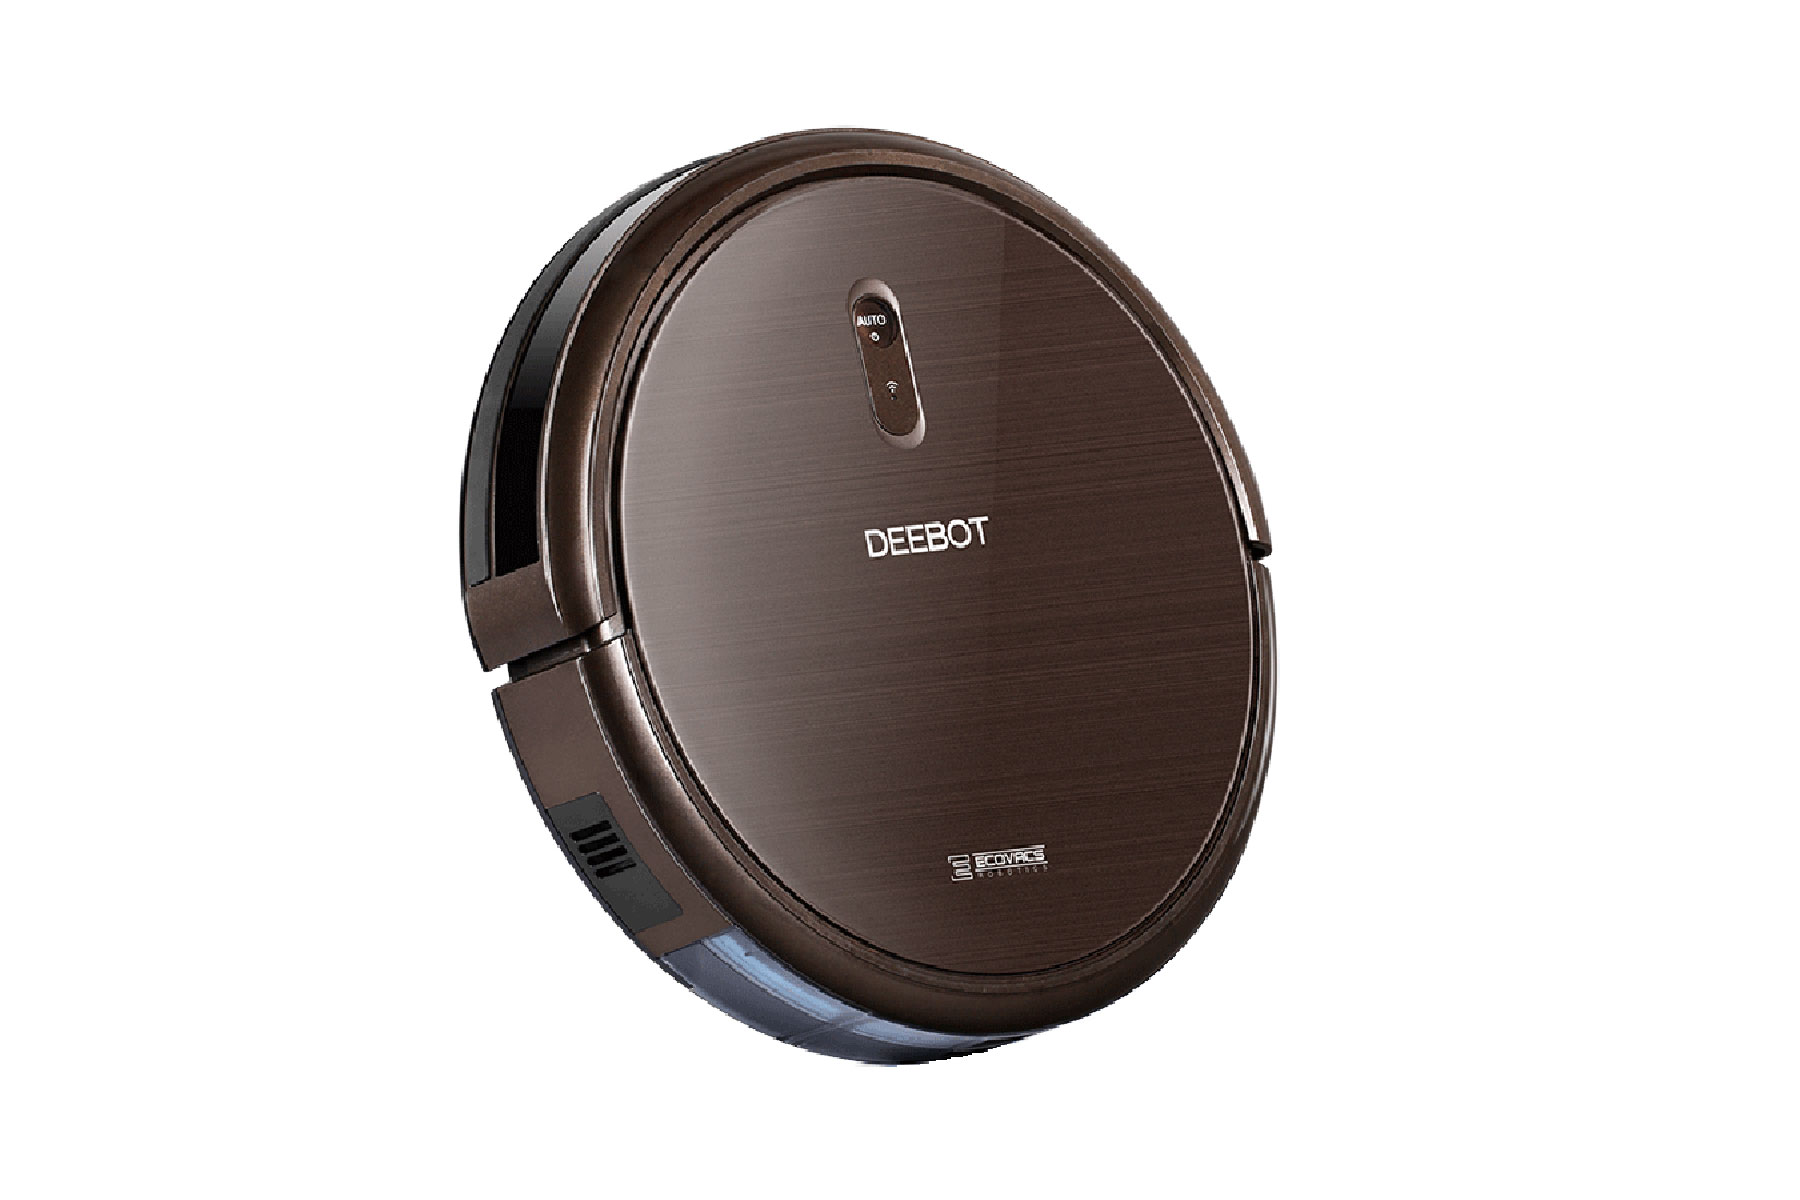 ECOVACS Deebot Robotic Vacuum Cleaner on sale for Amazon Prime Day 2019